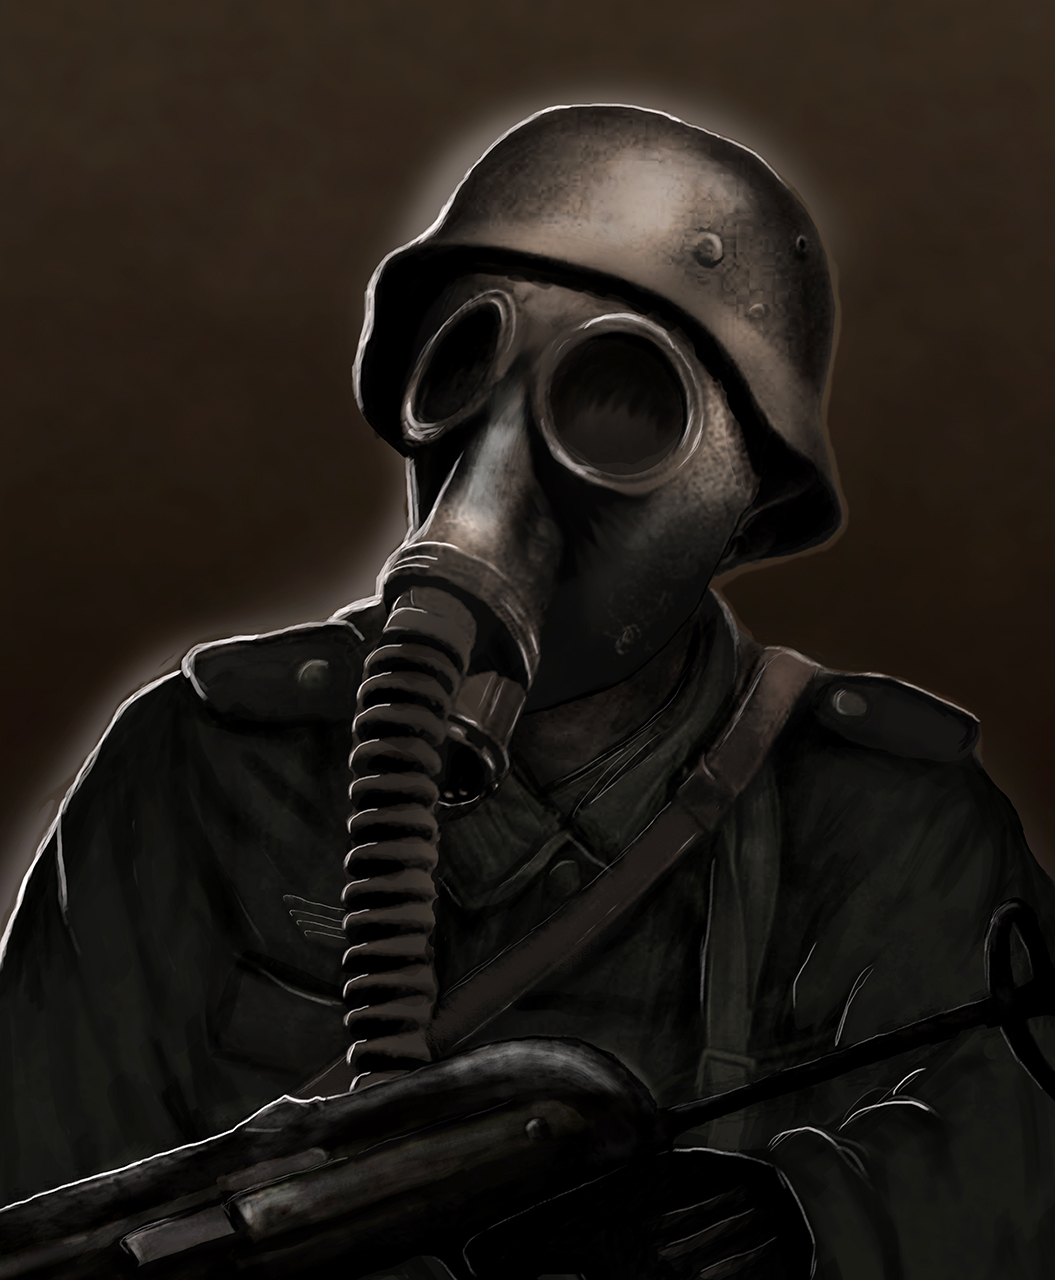 gasmask pictures gasmask soldier by jonnyeklund on deviantart 7747